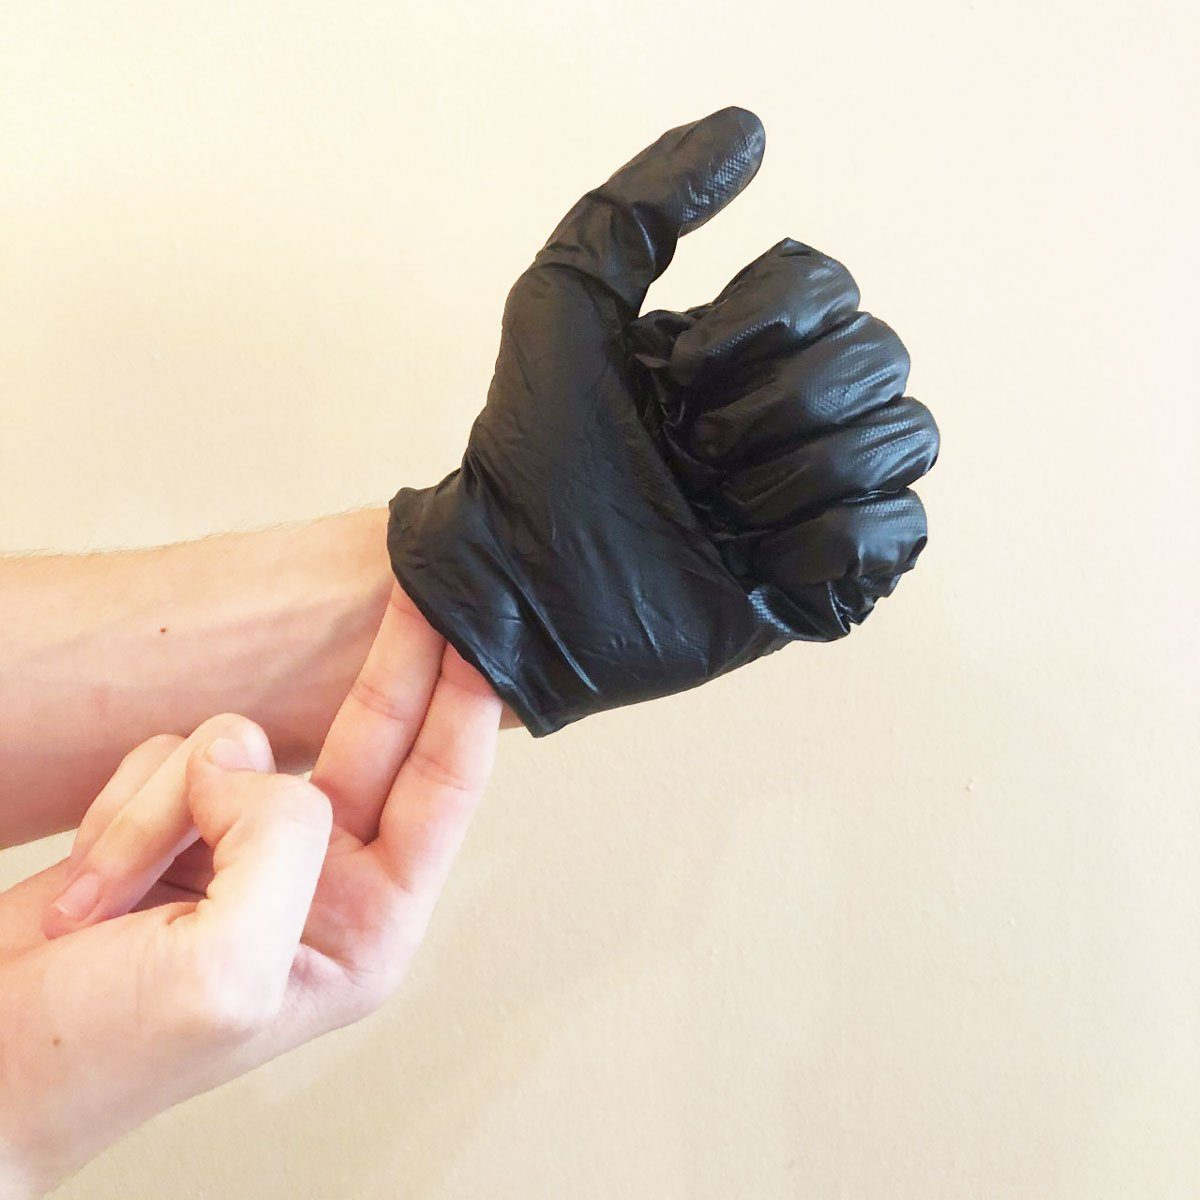 Step 4 of removing gloves